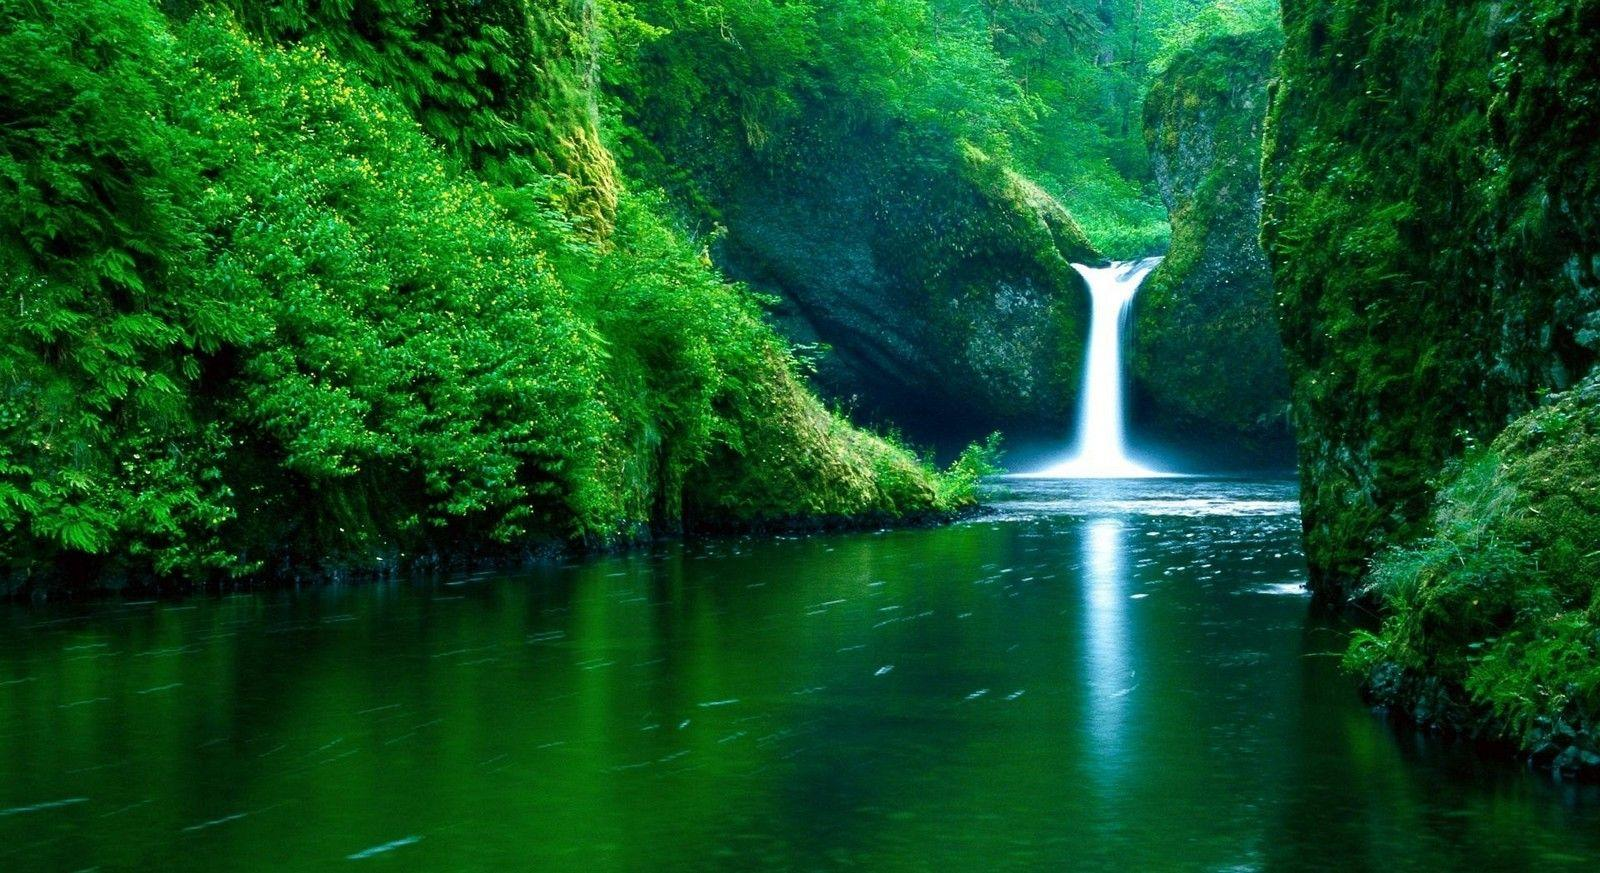 Nature Wallpapers For Desktop Backgrounds Full Screen Wallpaper Cave